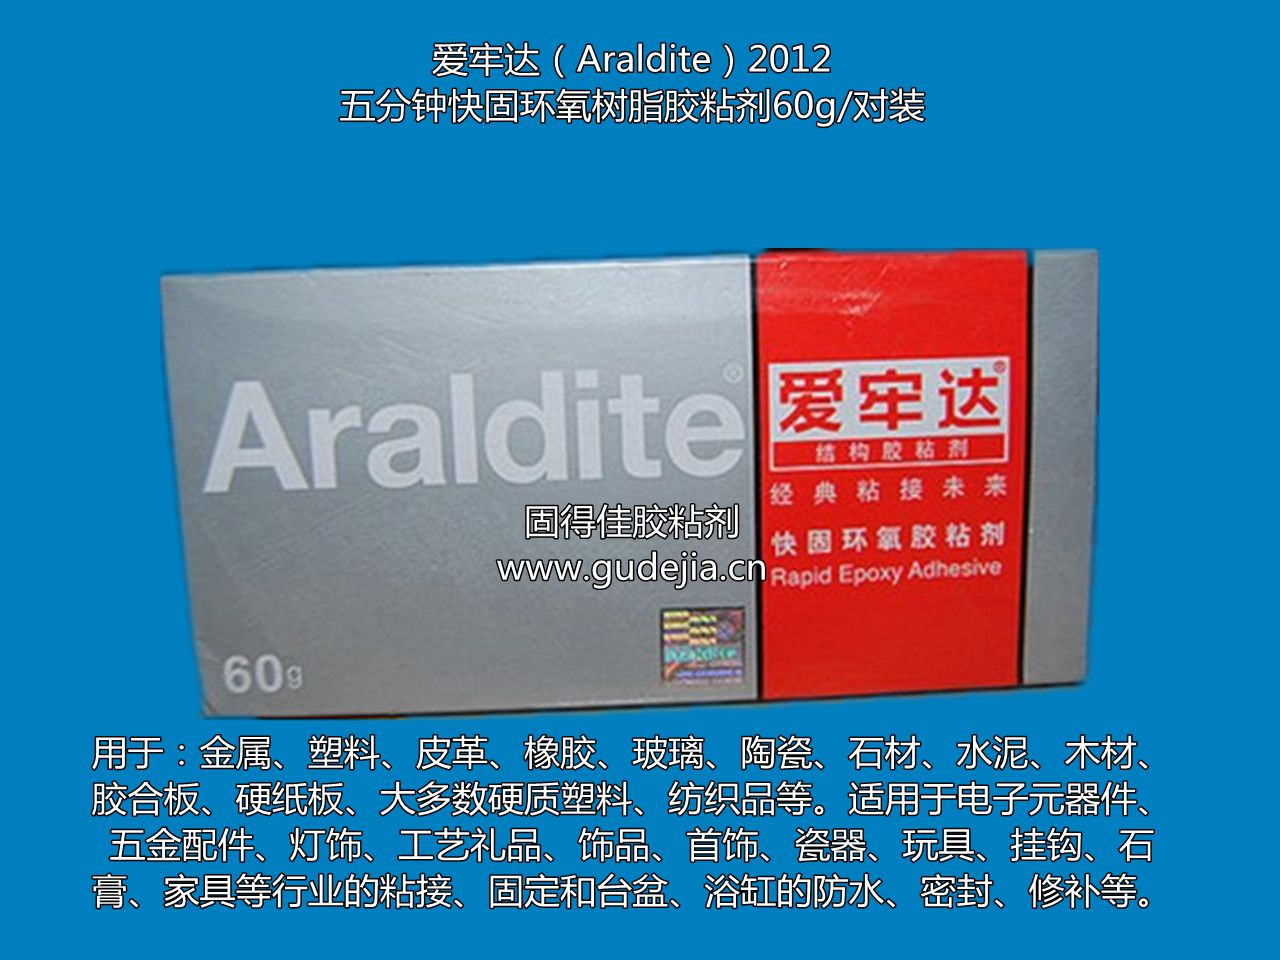 Araldite's five-minute quick-drying structural adhesive, fast-setting epoxy adhesive, AB glue